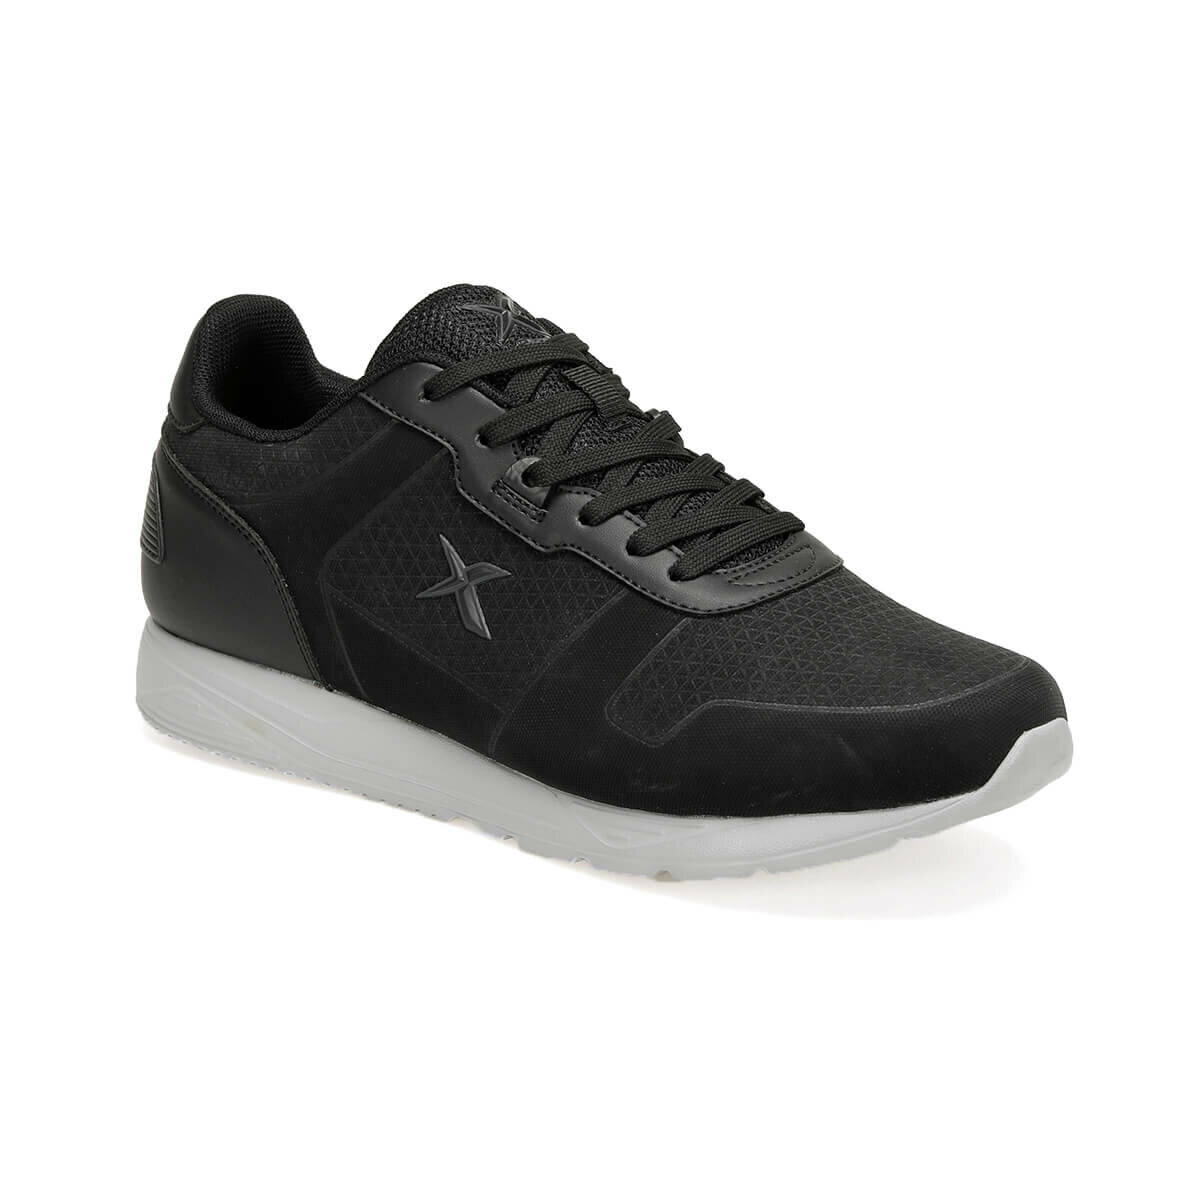 FLO MORGAN M 9PR Black Men 'S Sneaker Shoes KINETIX